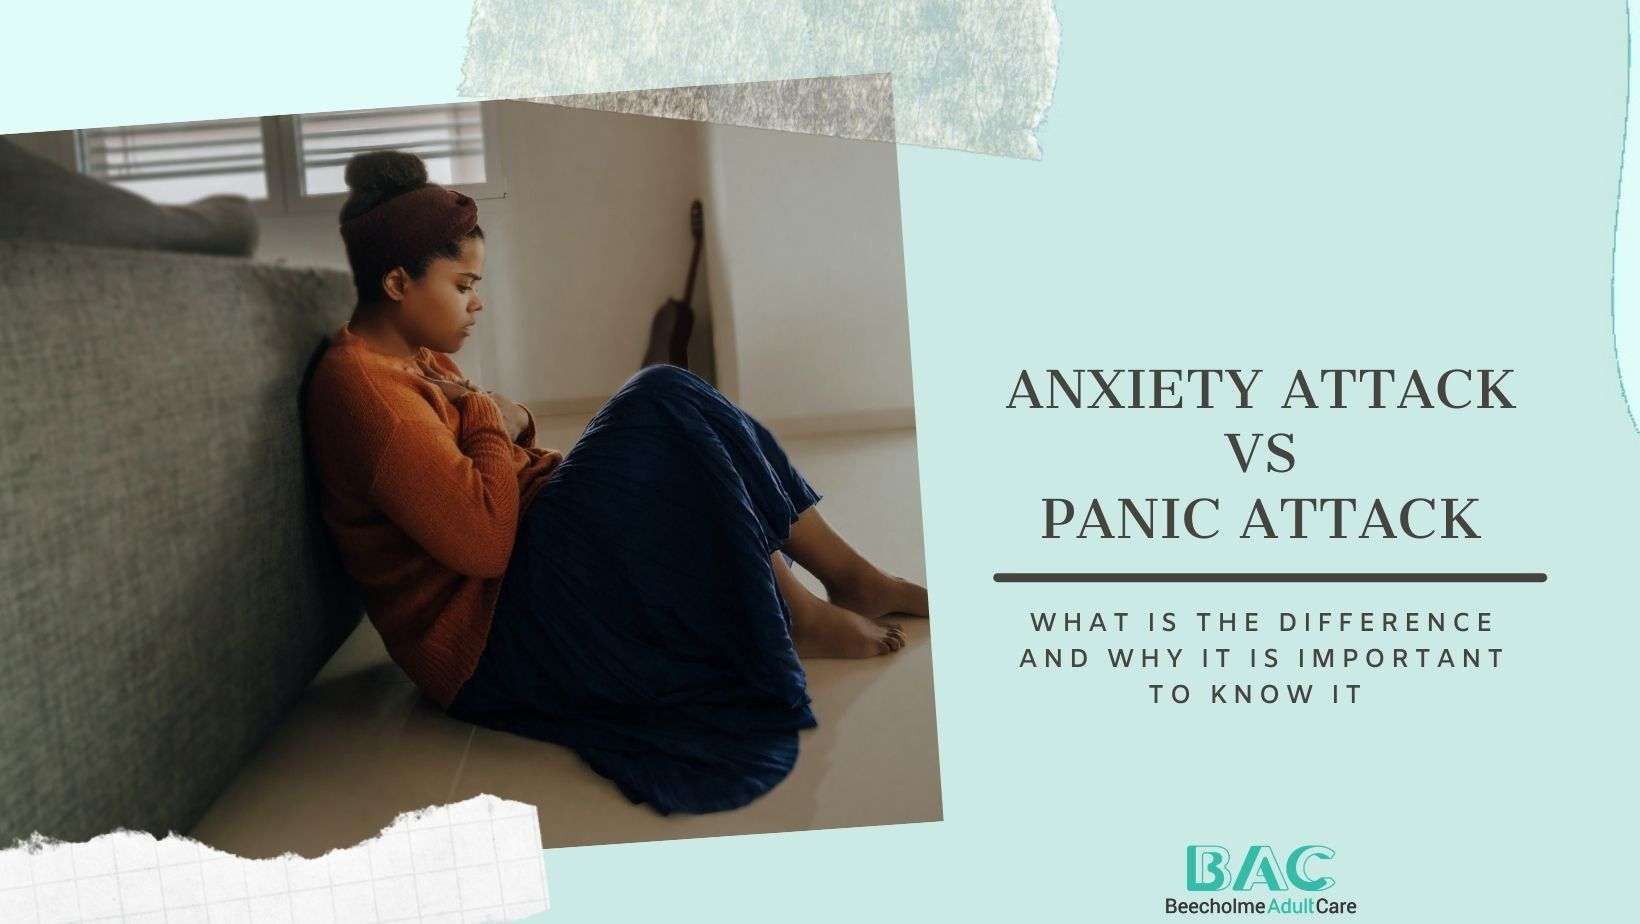 Panic attacks and anxiety attacks